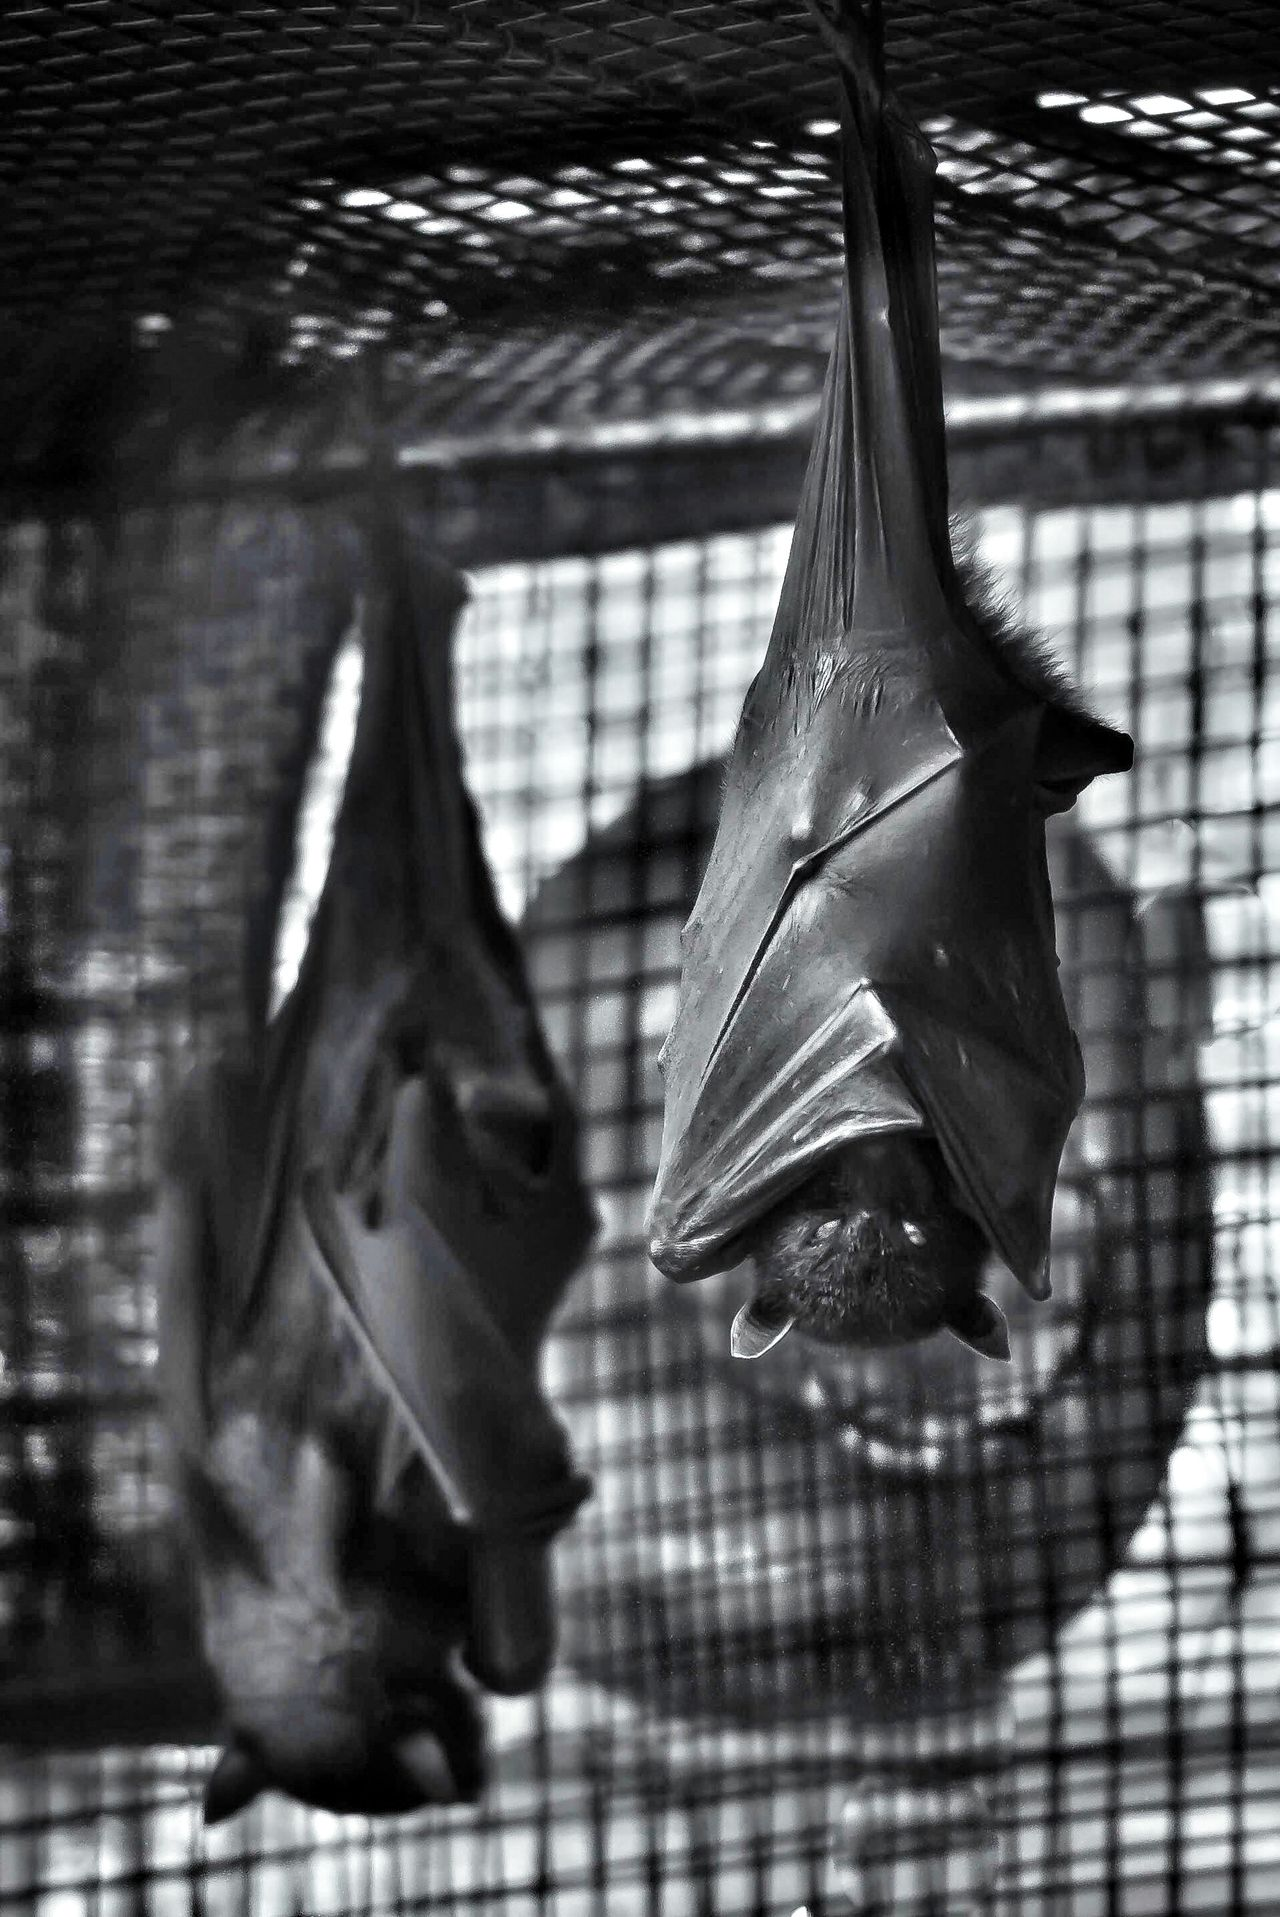 Creepy Creatures Bw_collection EyeEm Best Shots - Black + White Shootermag Mission Mystery